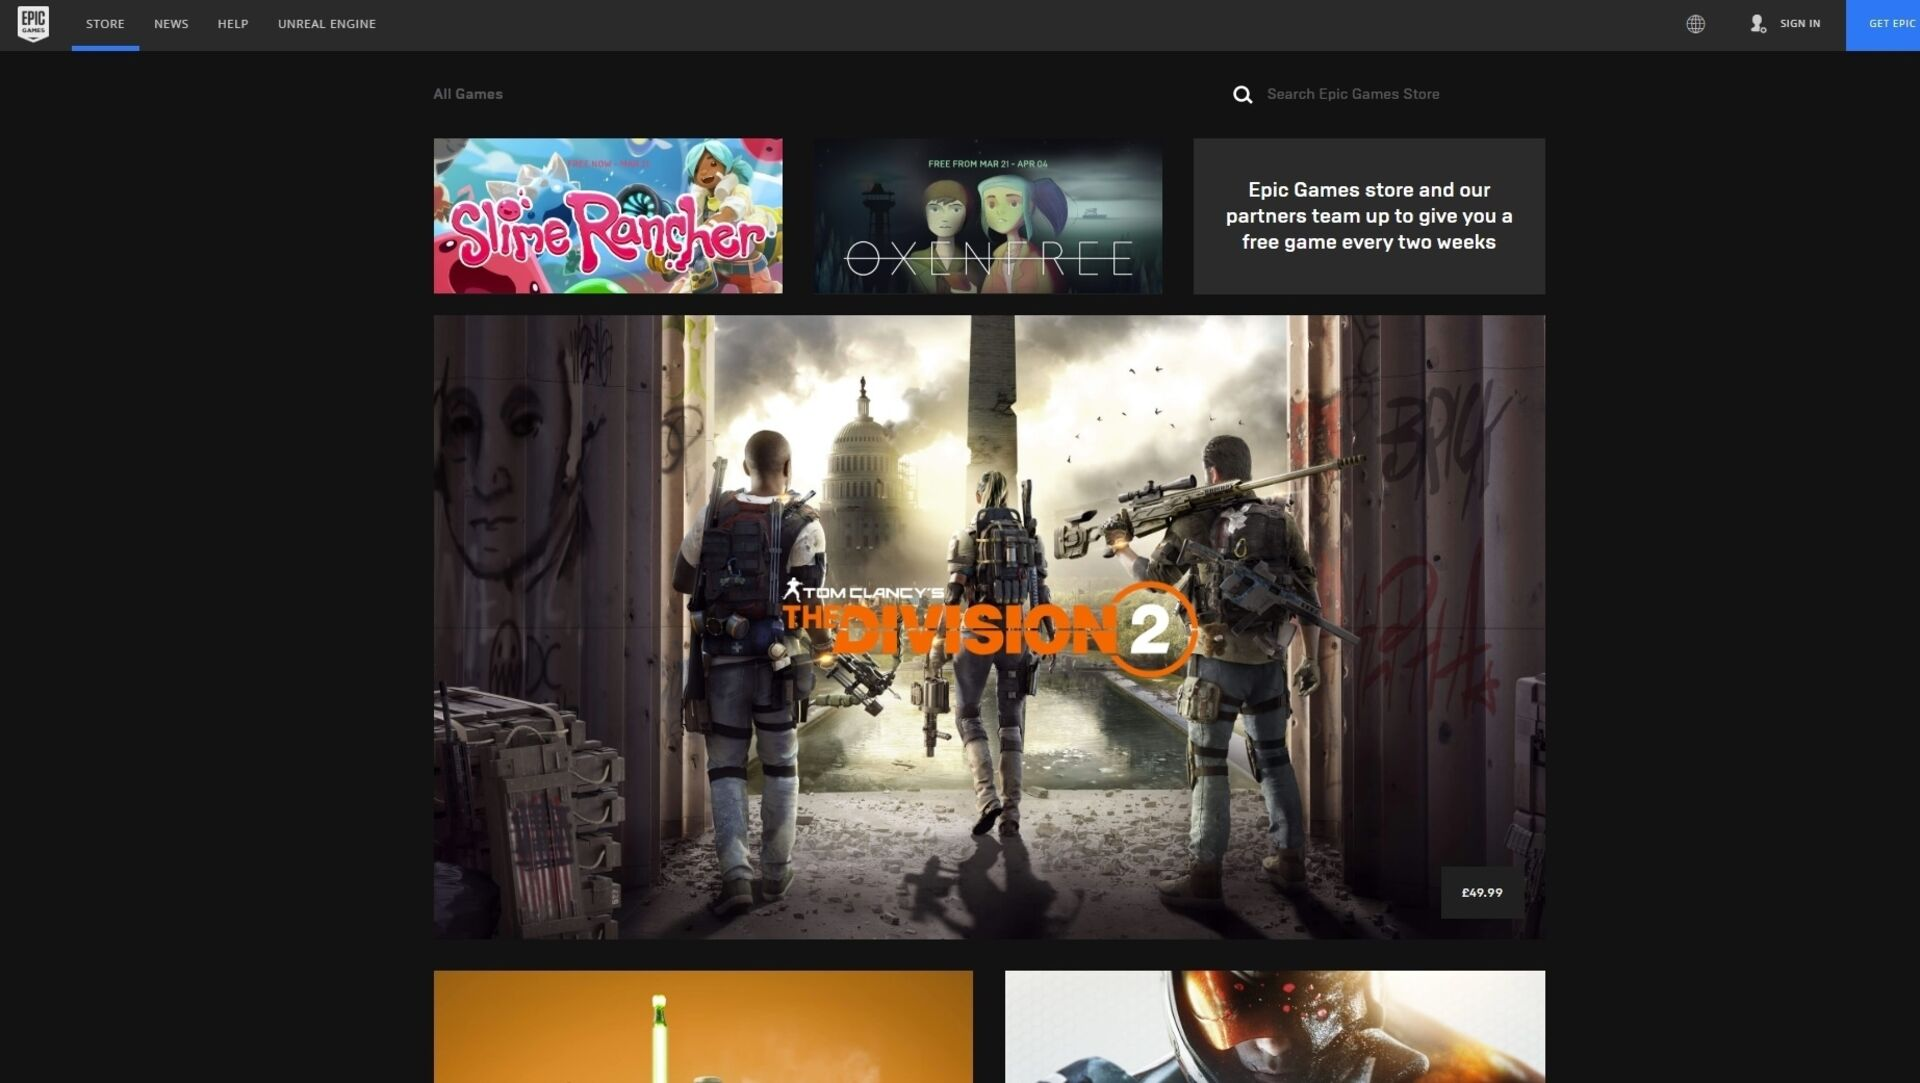 Epic responds to accusations its launcher accesses Steam data